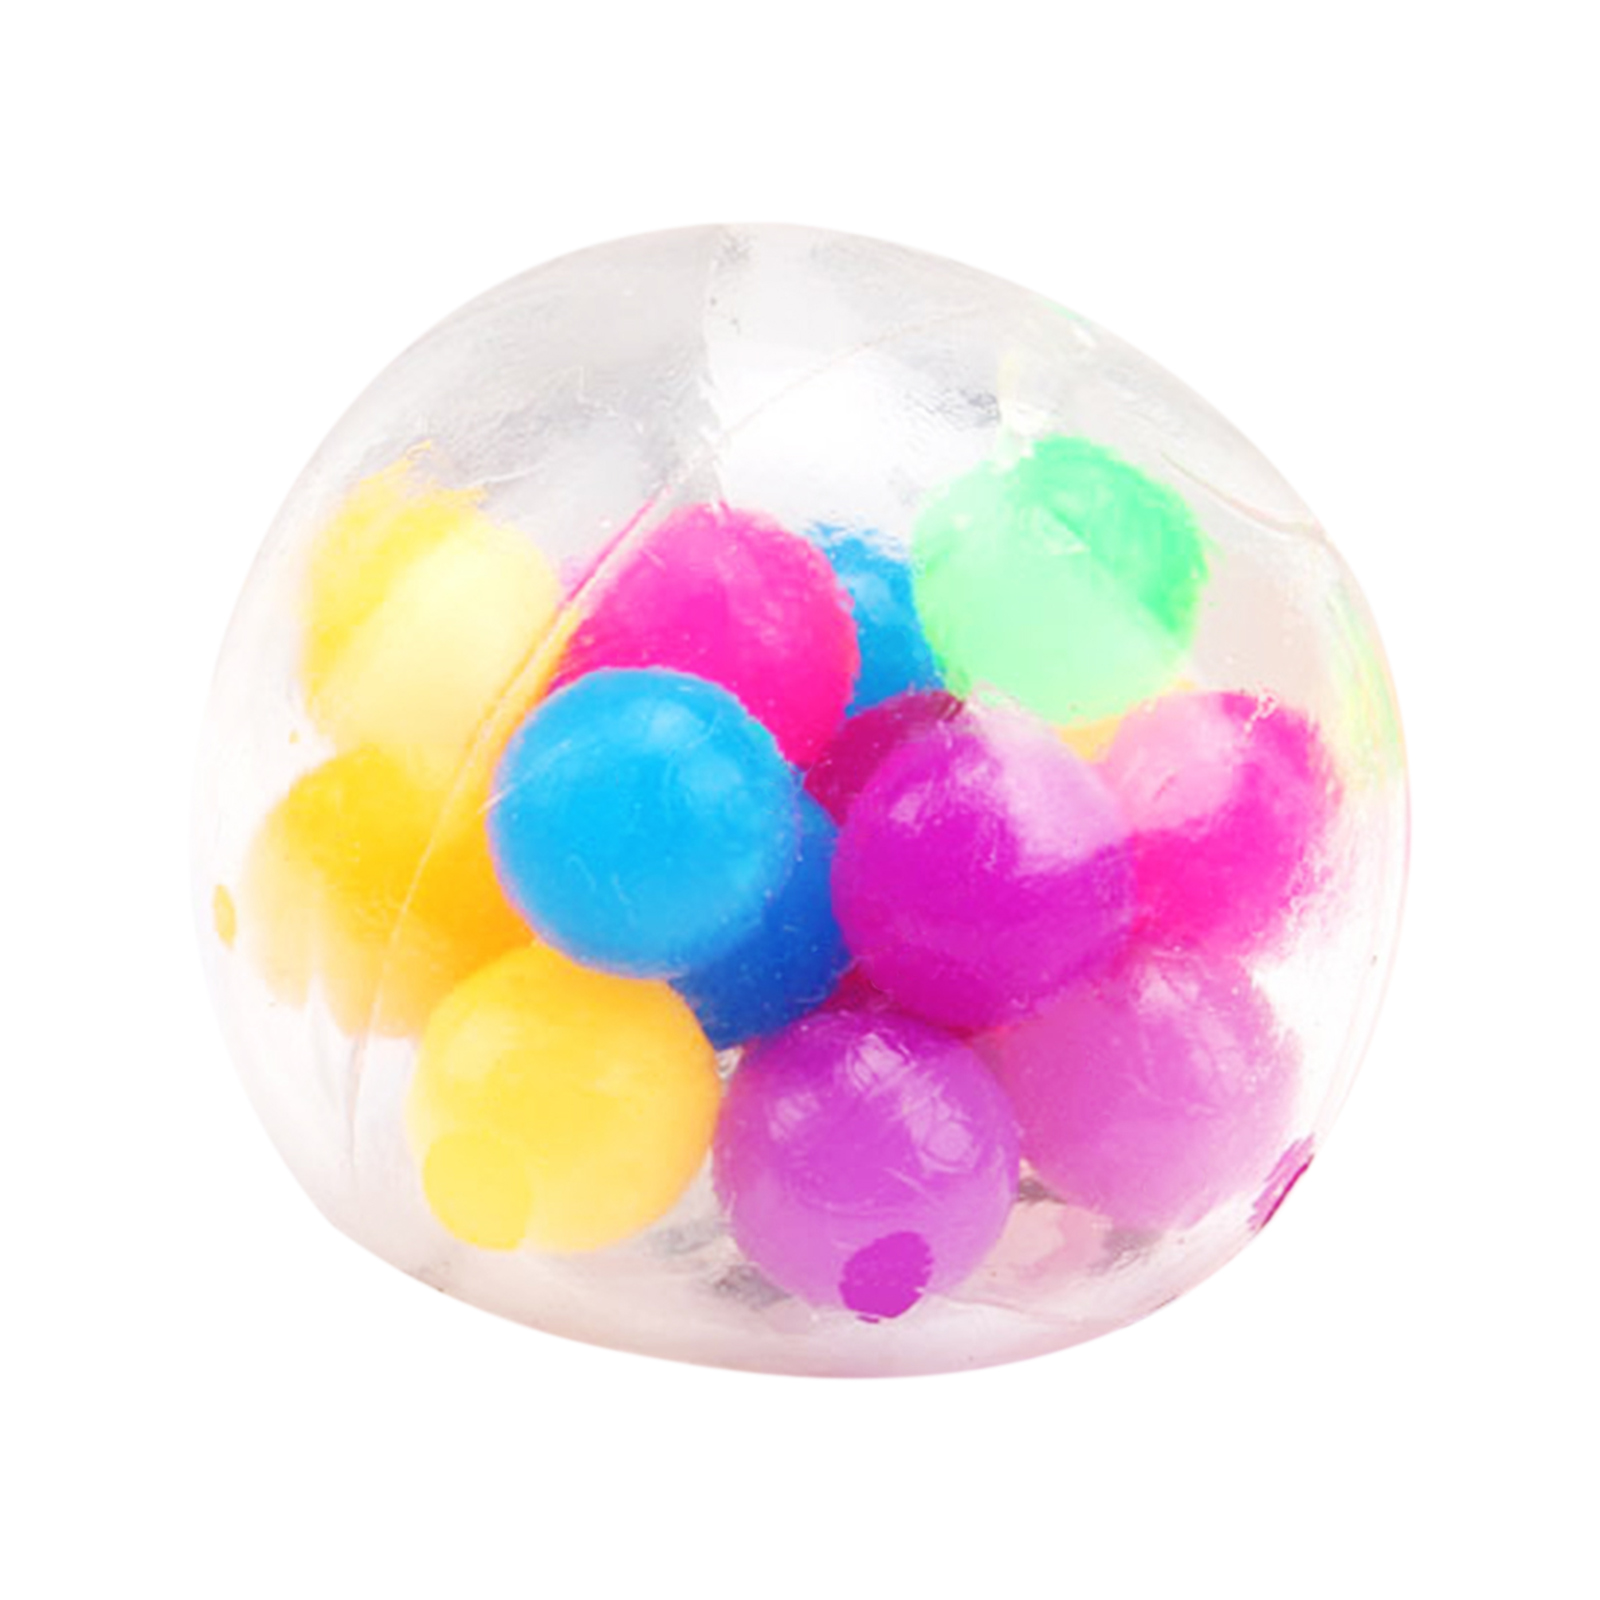 Squishy Toy Anti-Stress-Toys Rainbow-Ball Bead Squeezable-Stress Spongy Hot-Sale img3